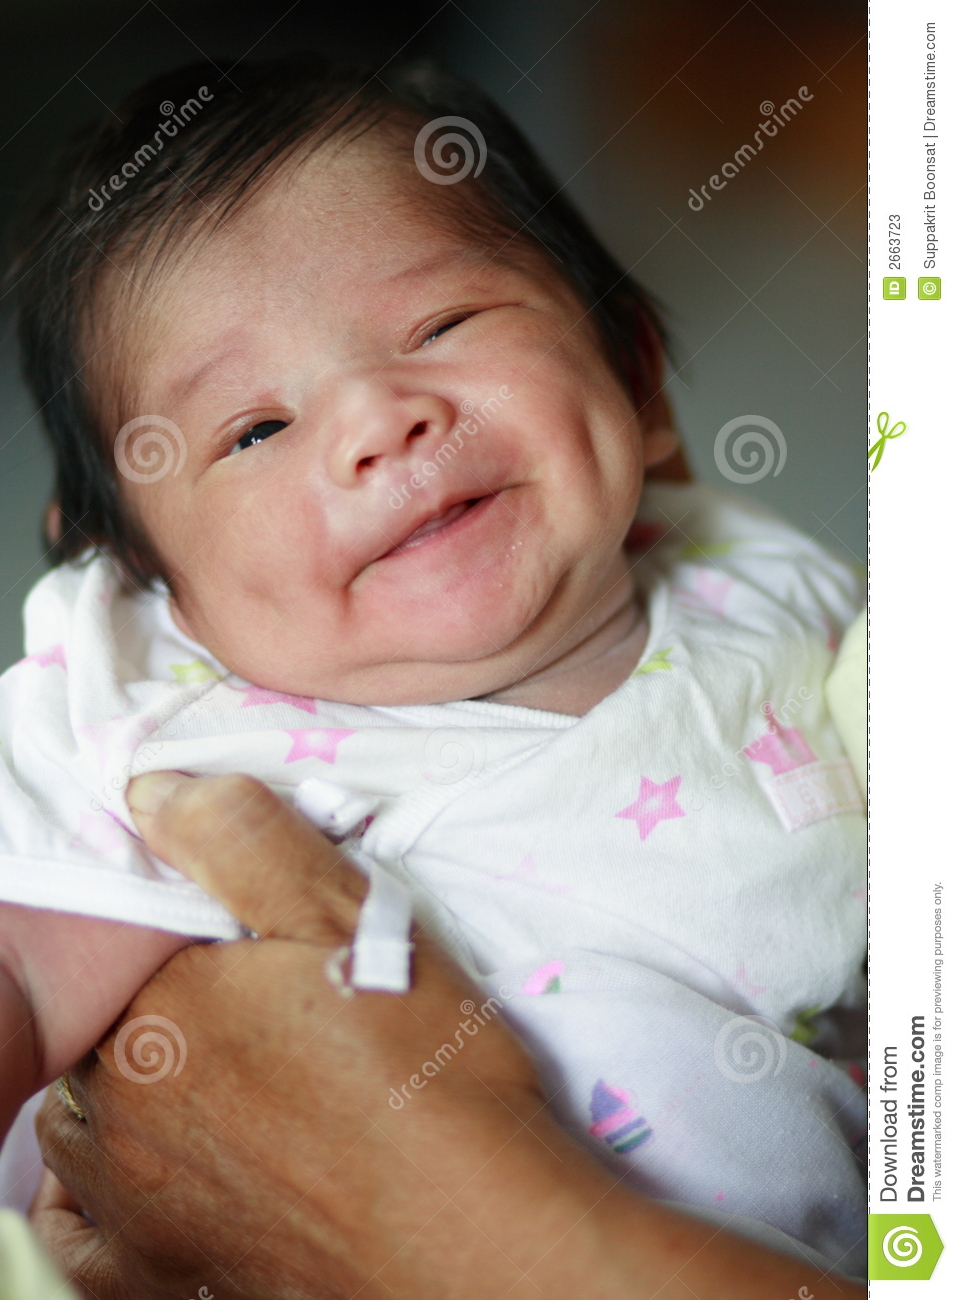 Cute Infants Wallpapers Smiling Dimpled Baby Stock Photos Image 2663723